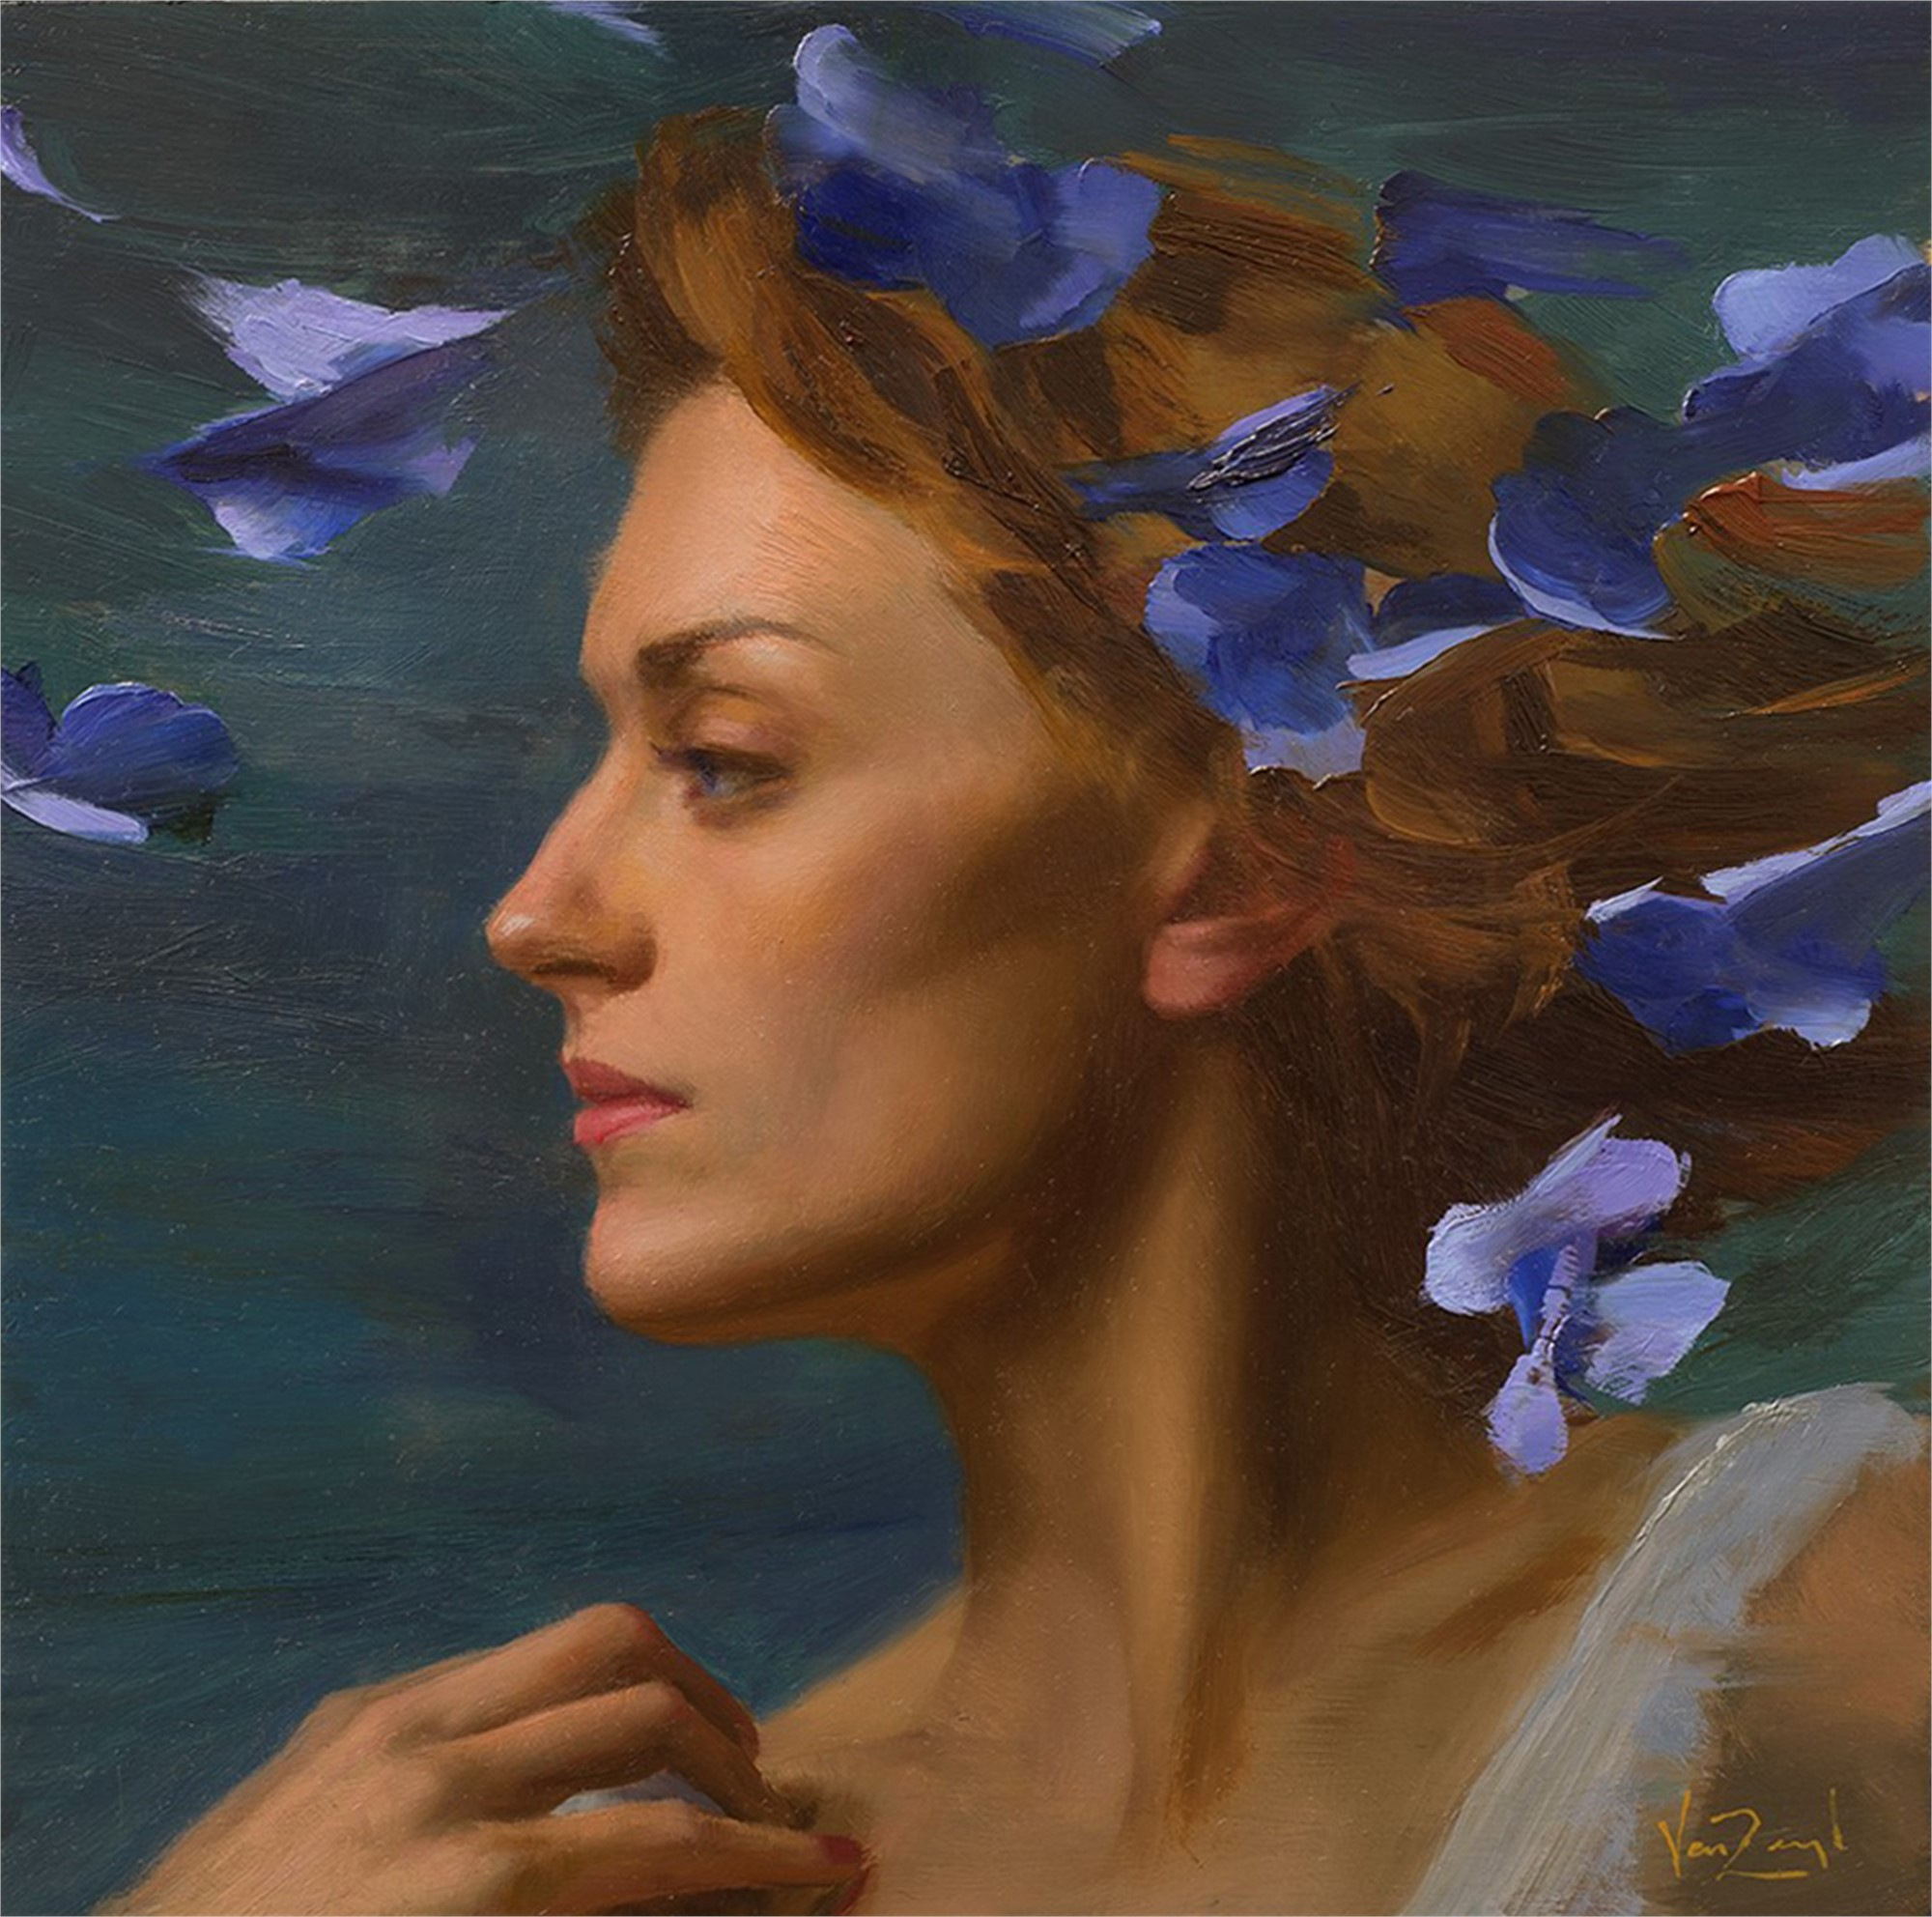 Kelsey in Blue by Michael Van Zeyl